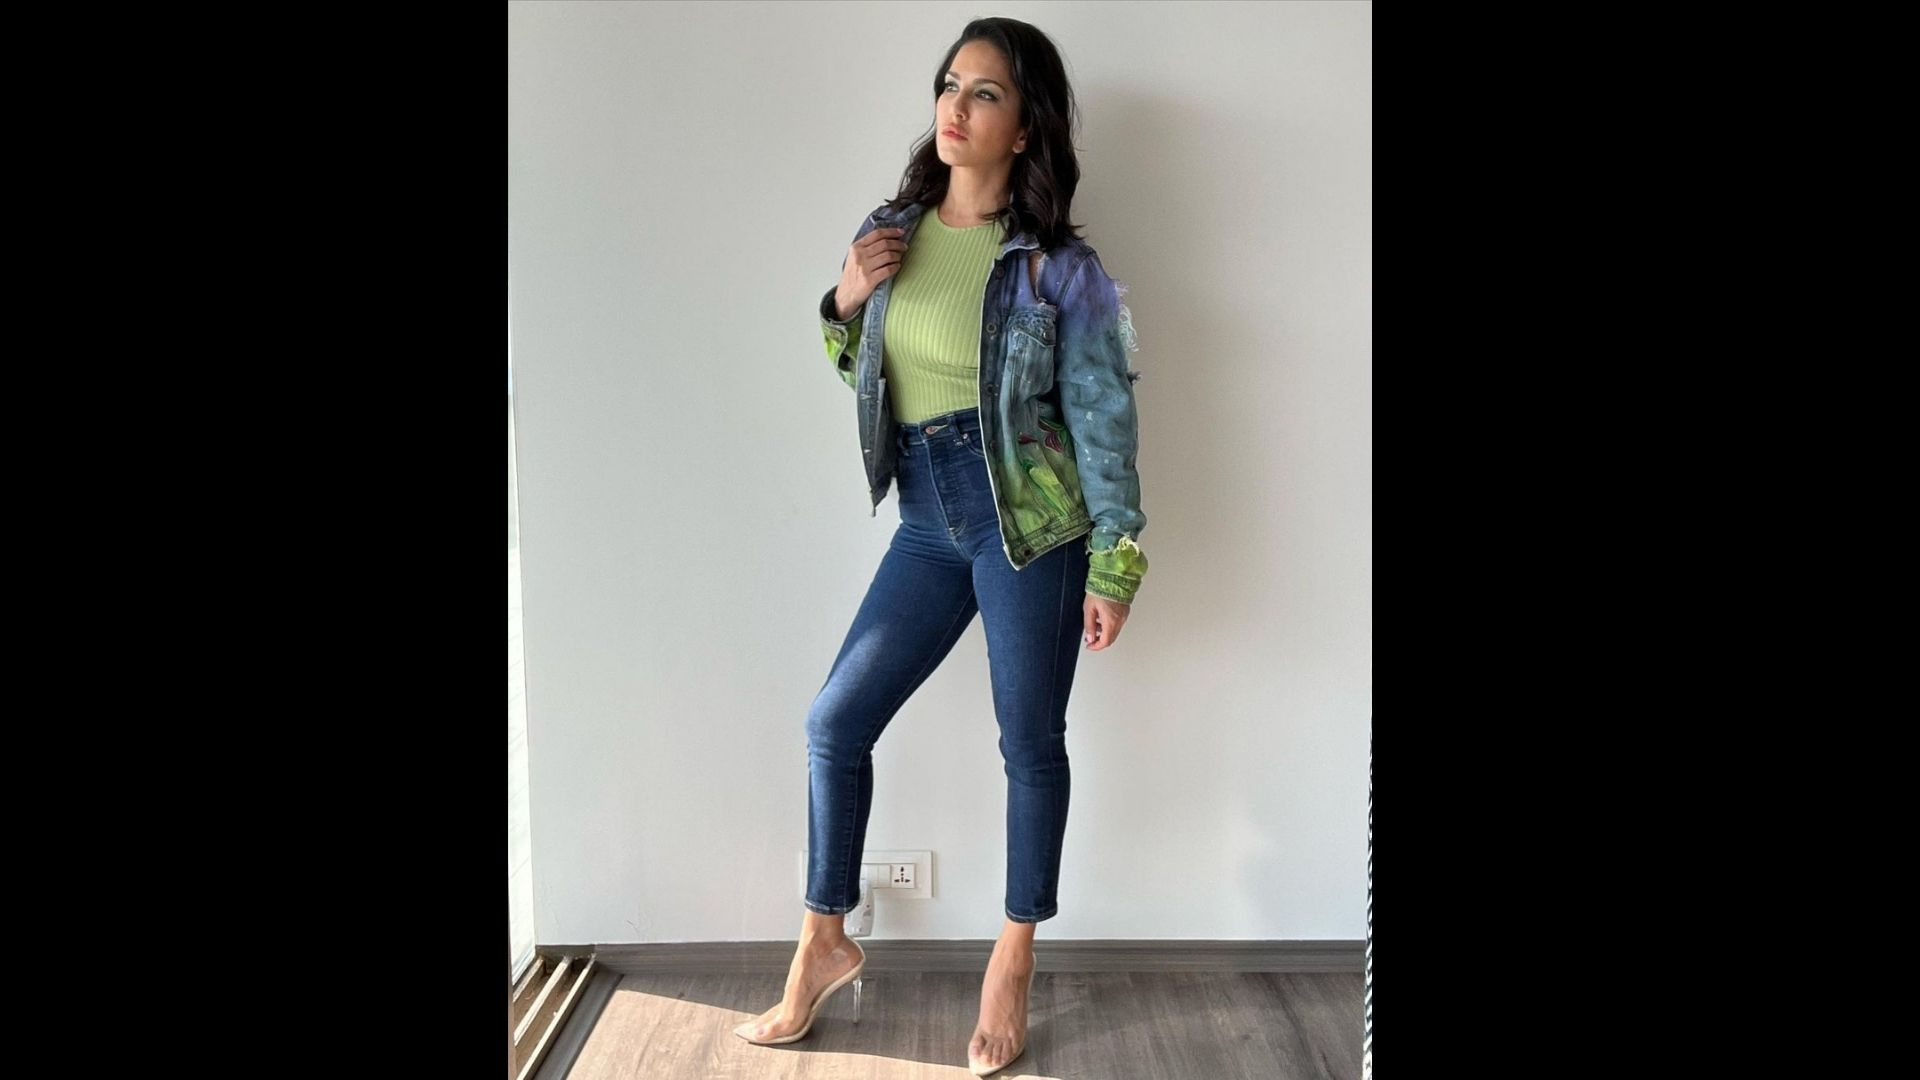 Sunny Leone Oozes Oomph Factor In A Denim Jacket And Heels; Her Cool And Casual Photos Will Make You Drool – SEE PICS